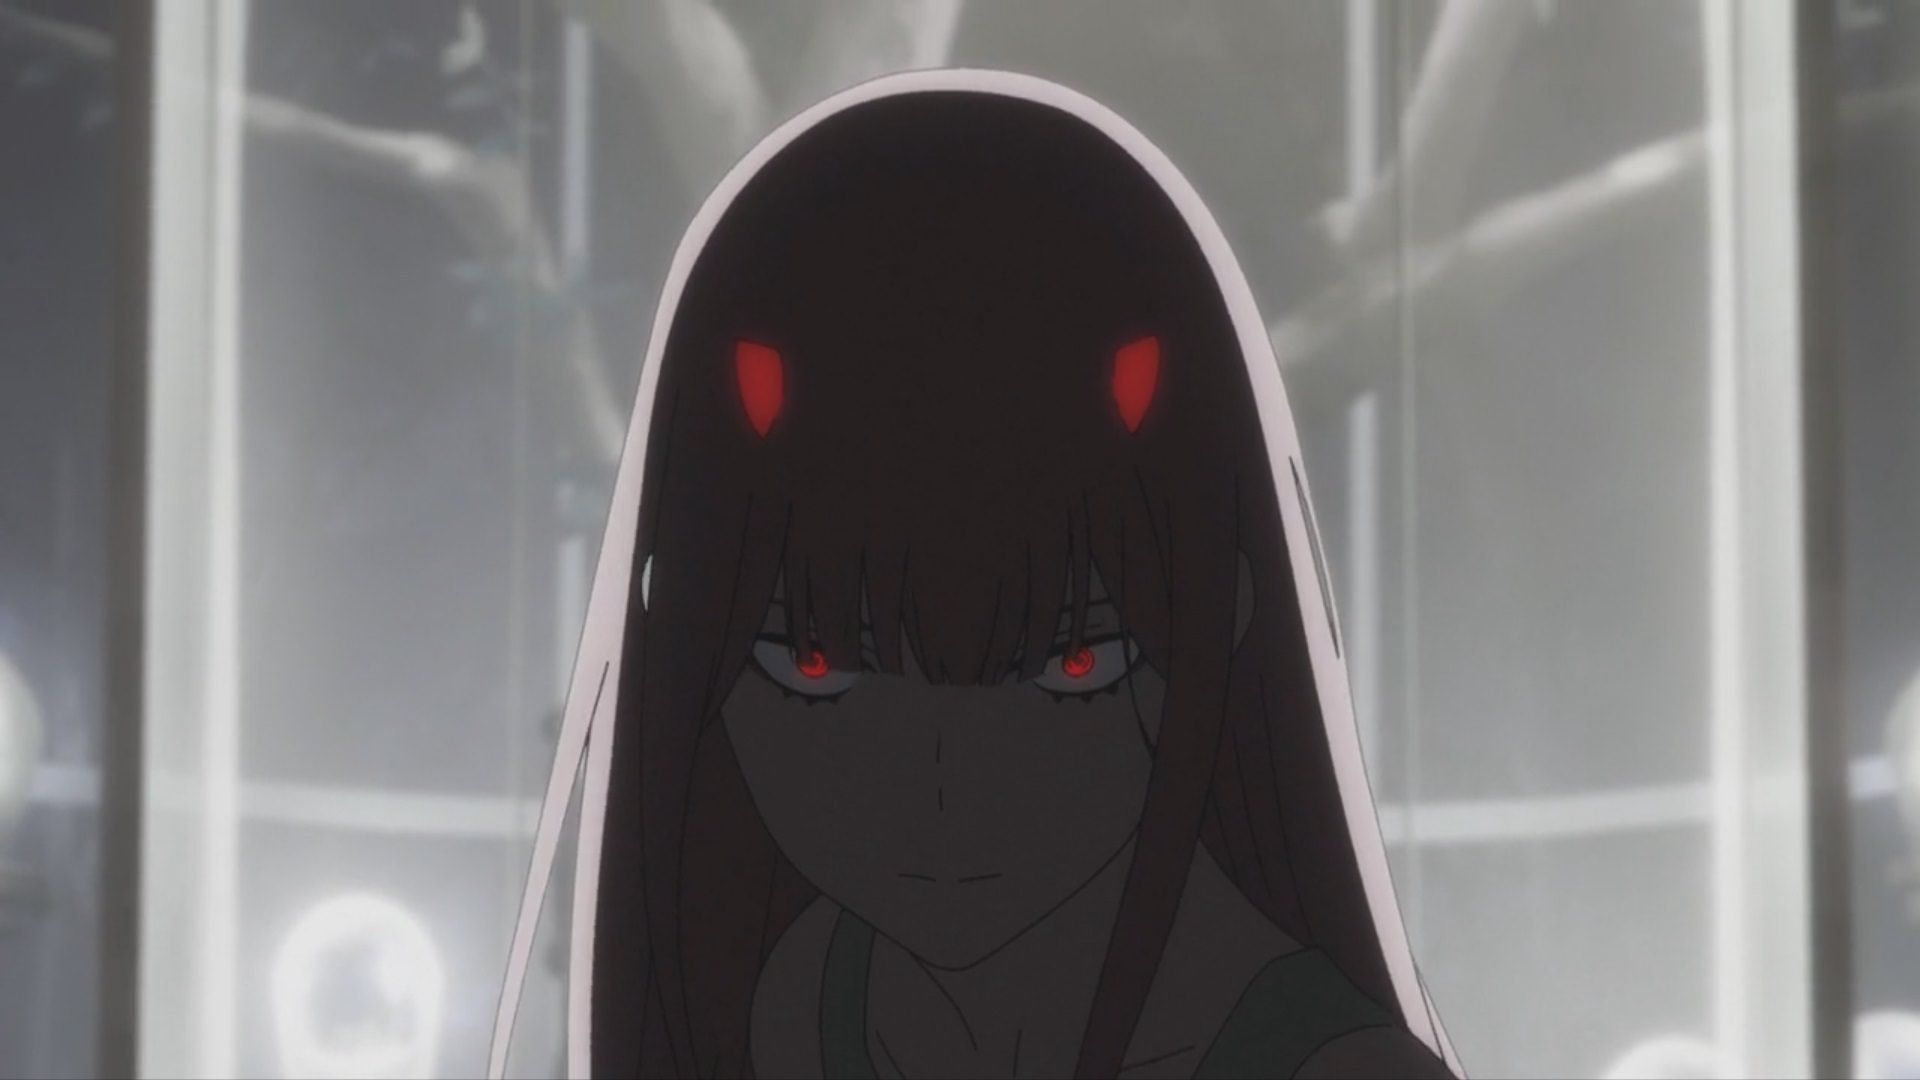 Darling In The Franxx Scary Zero Two 002 Darling In The Franxx Zero Two Scary Scream